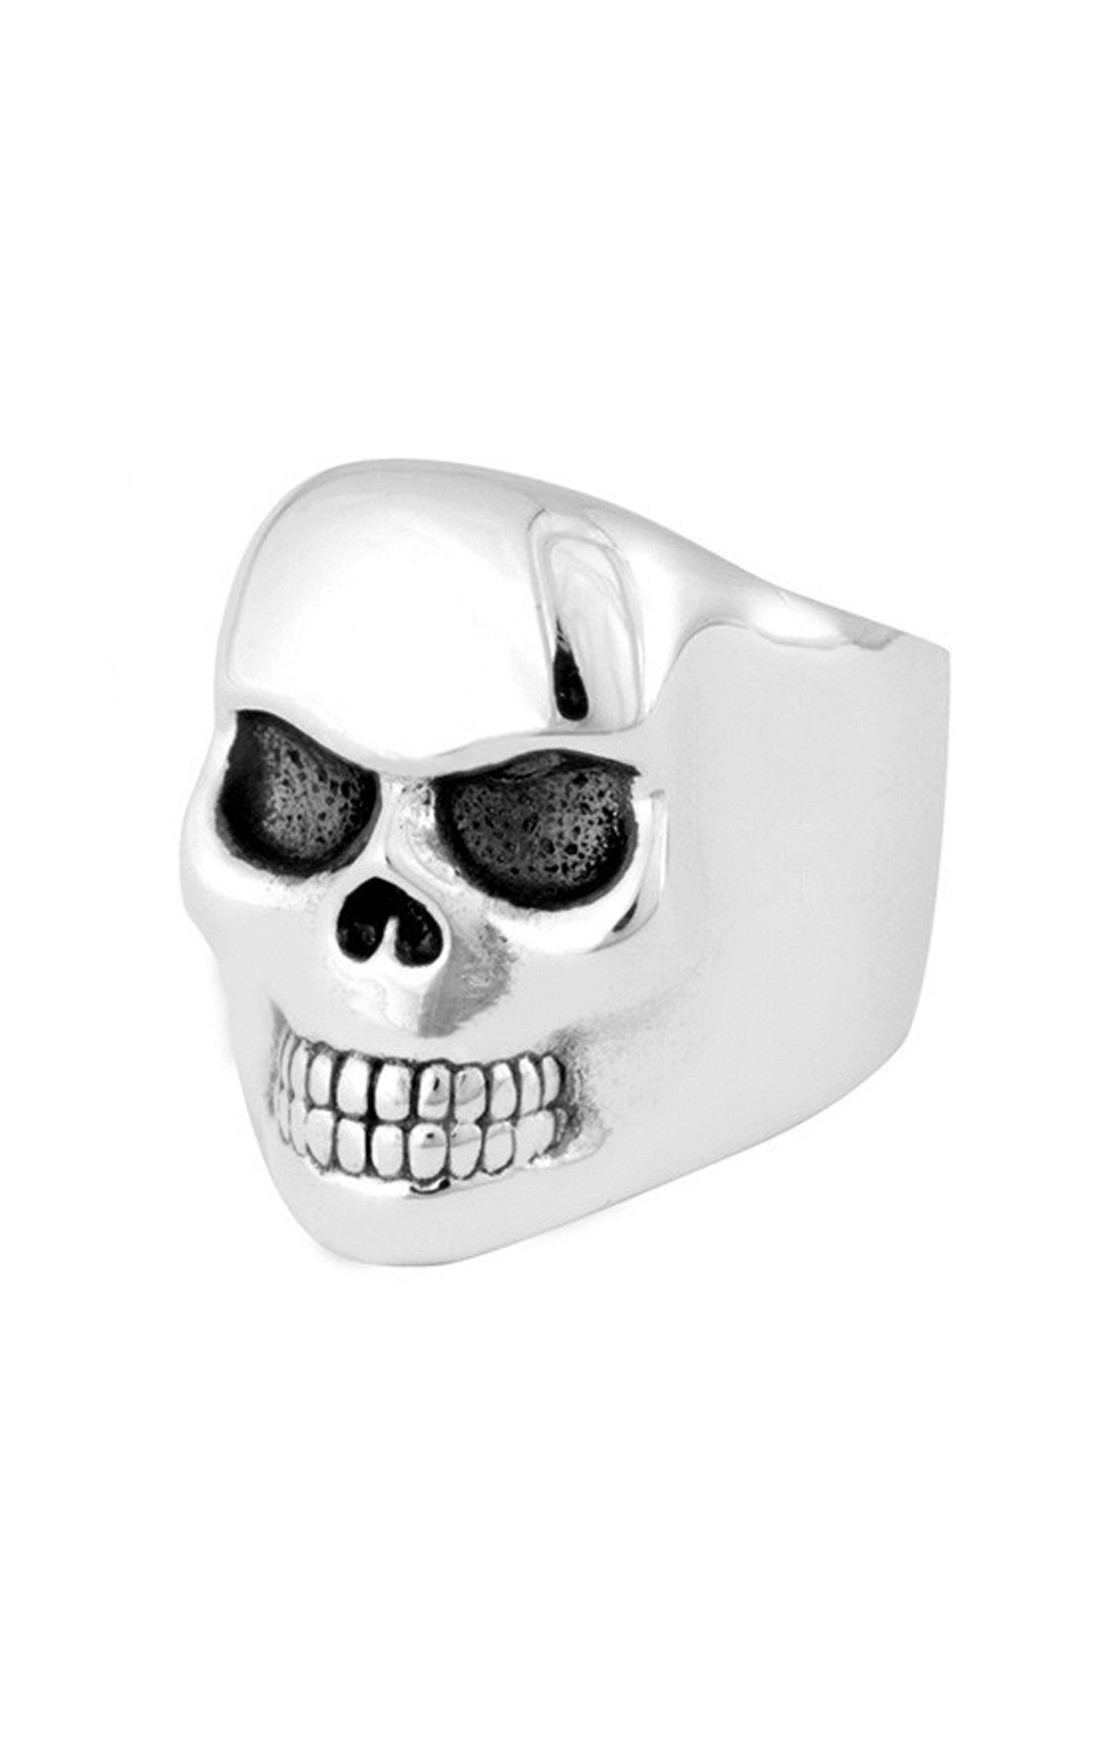 King Baby - Small Classic Skull Ring (K20-5692)